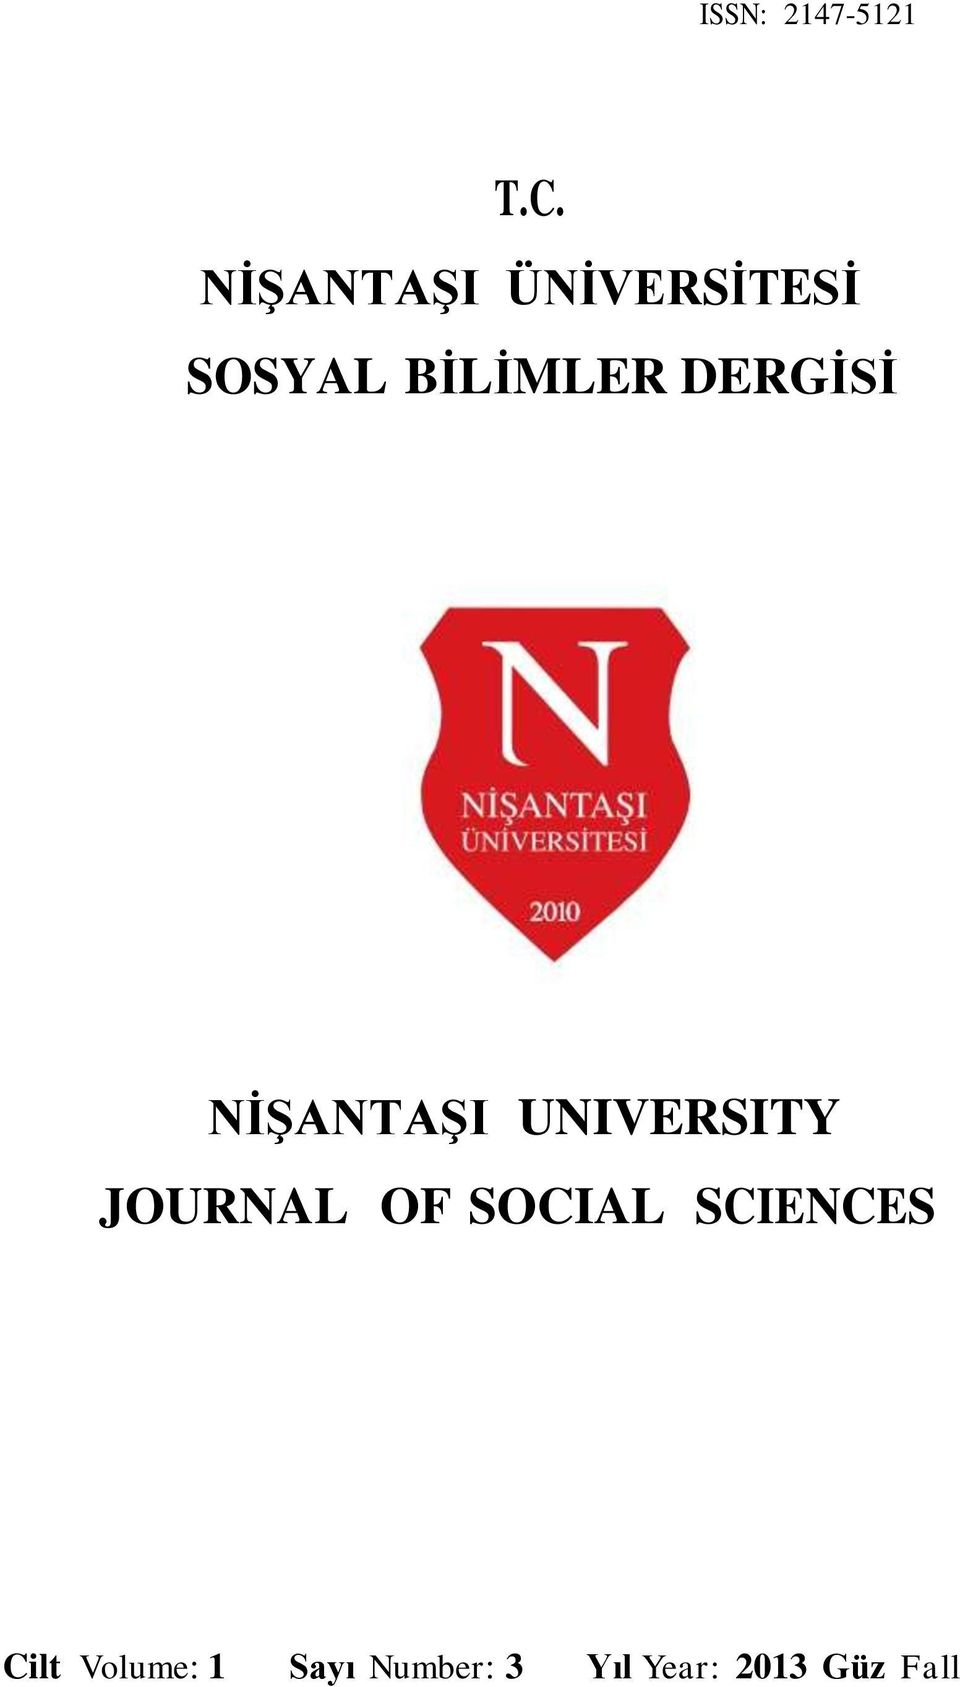 DERGİSİ NİŞANTAŞI UNIVERSITY JOURNAL OF